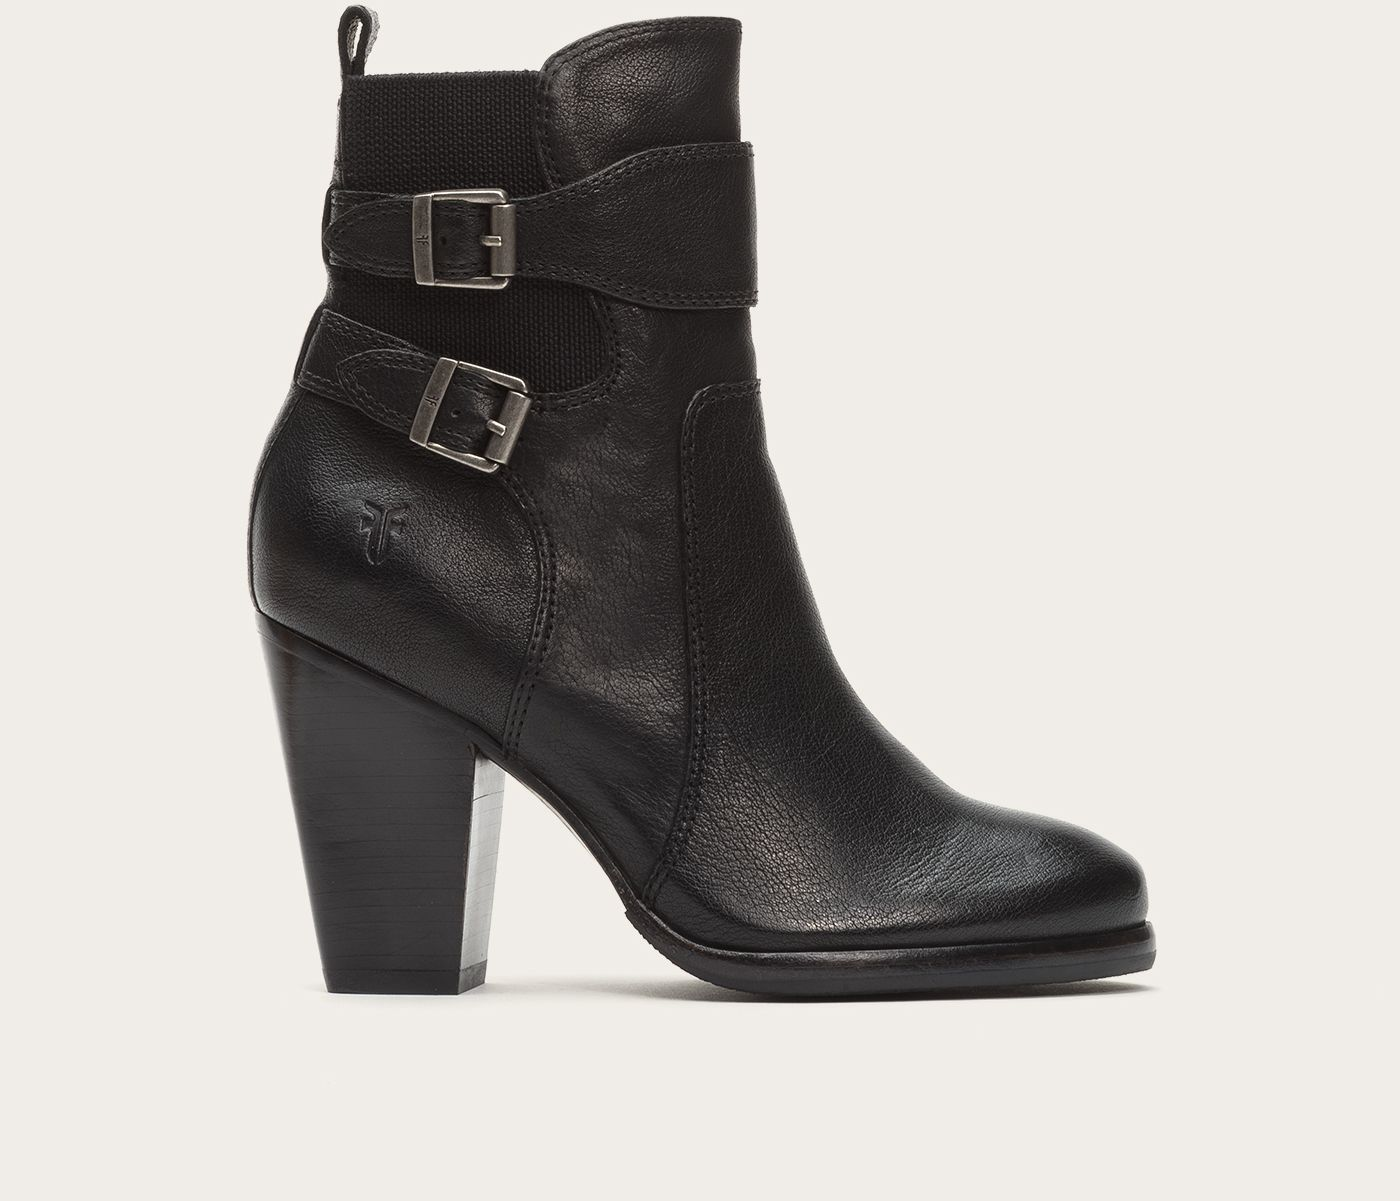 Nice and regal, this bootie commands attention. Buffalo leather that's been burnished just so gives this sleek ankle boot a uniquely textured look, while the double straps add distinctive style. Elastic gore back provides a comfortable, laid-back vibe, while the stacked leather heel gives you the height to make an entrance.